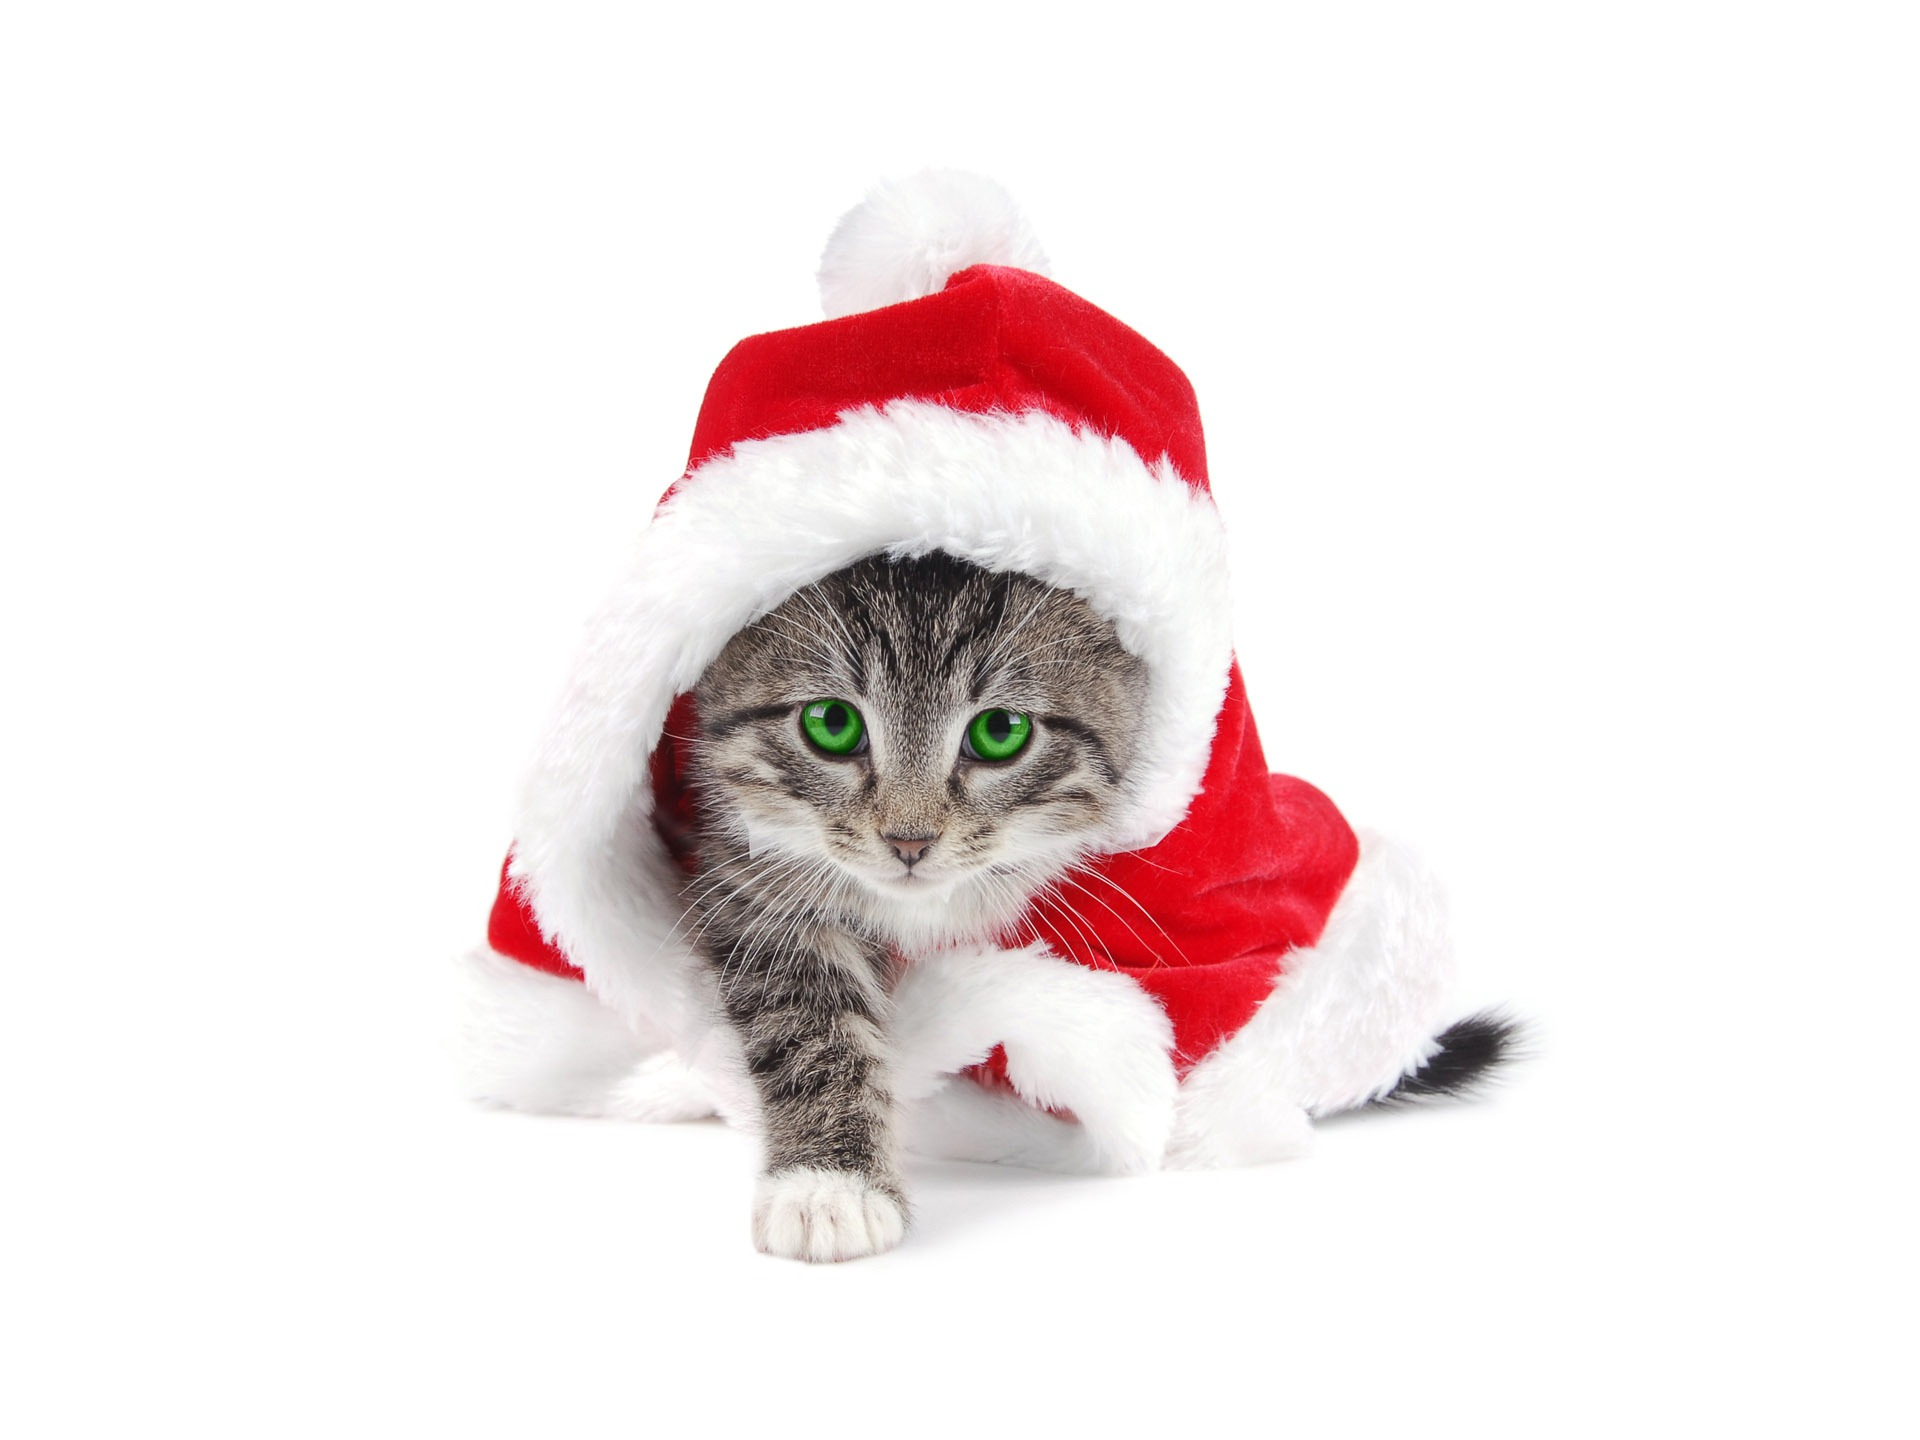 Animal Anime Of A Cat With Santa Claus Hat 211257 Wallpaper wallpaper